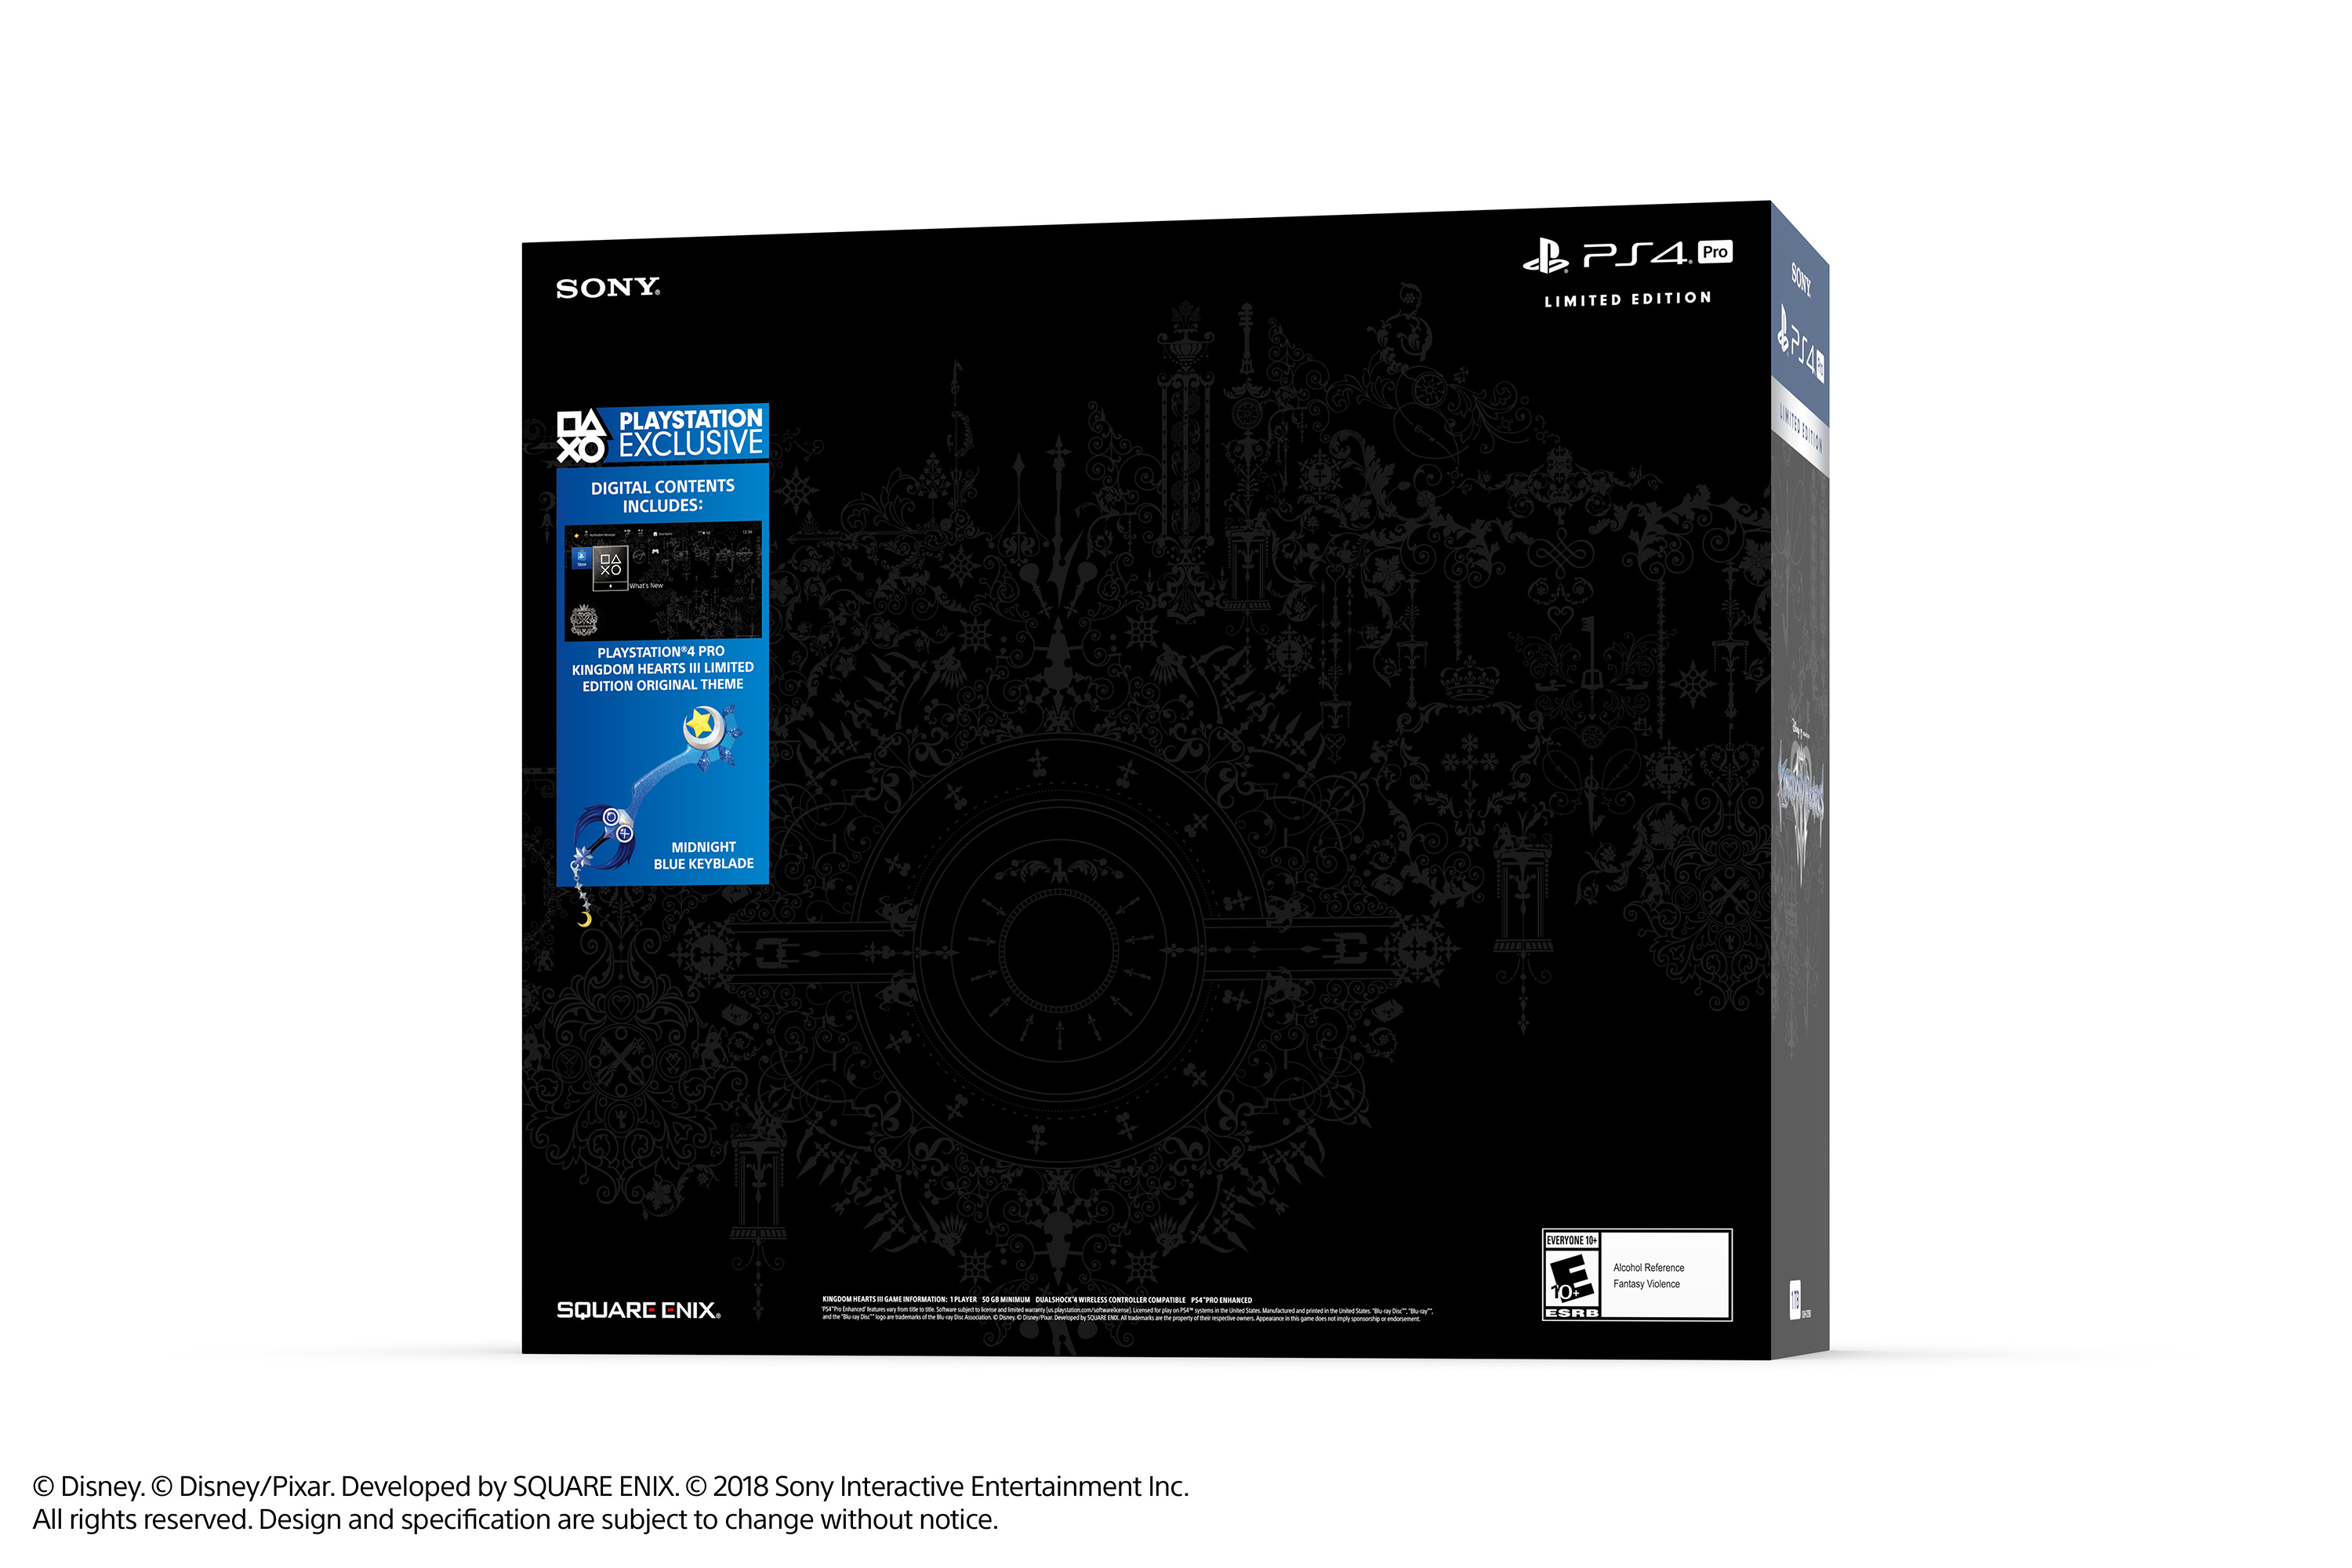 Limited Edition Kingdom Hearts III PS4 Pro Bundle Image 5